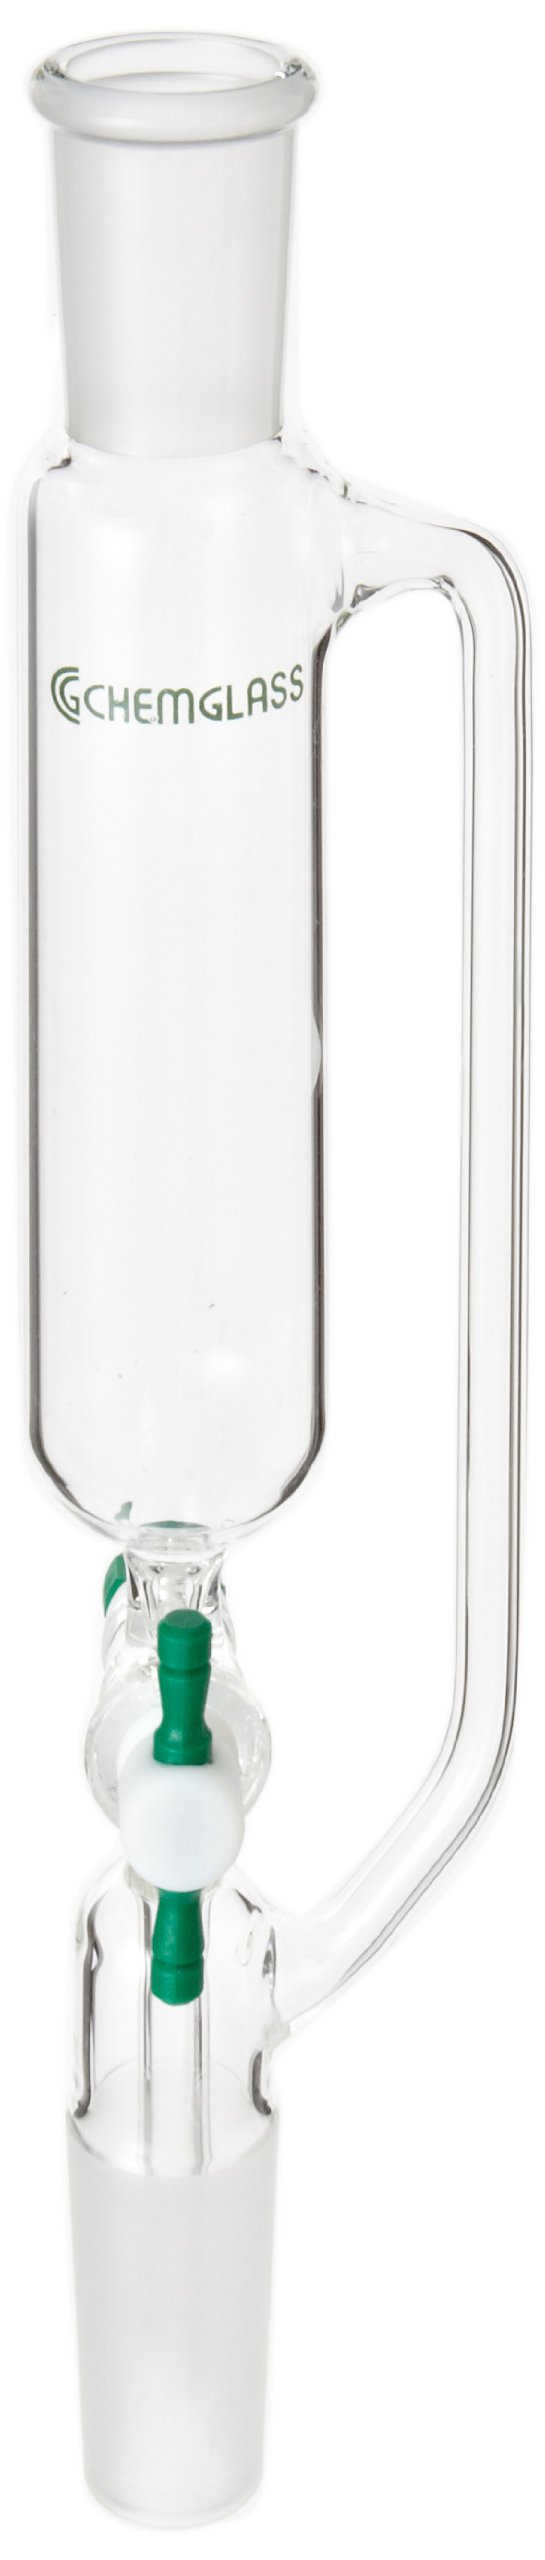 Chemglass CG-1702-01 Glass Cylindrical Style Addition Funnel, with 2mm PTFE Stopcock, 60mL Capacity